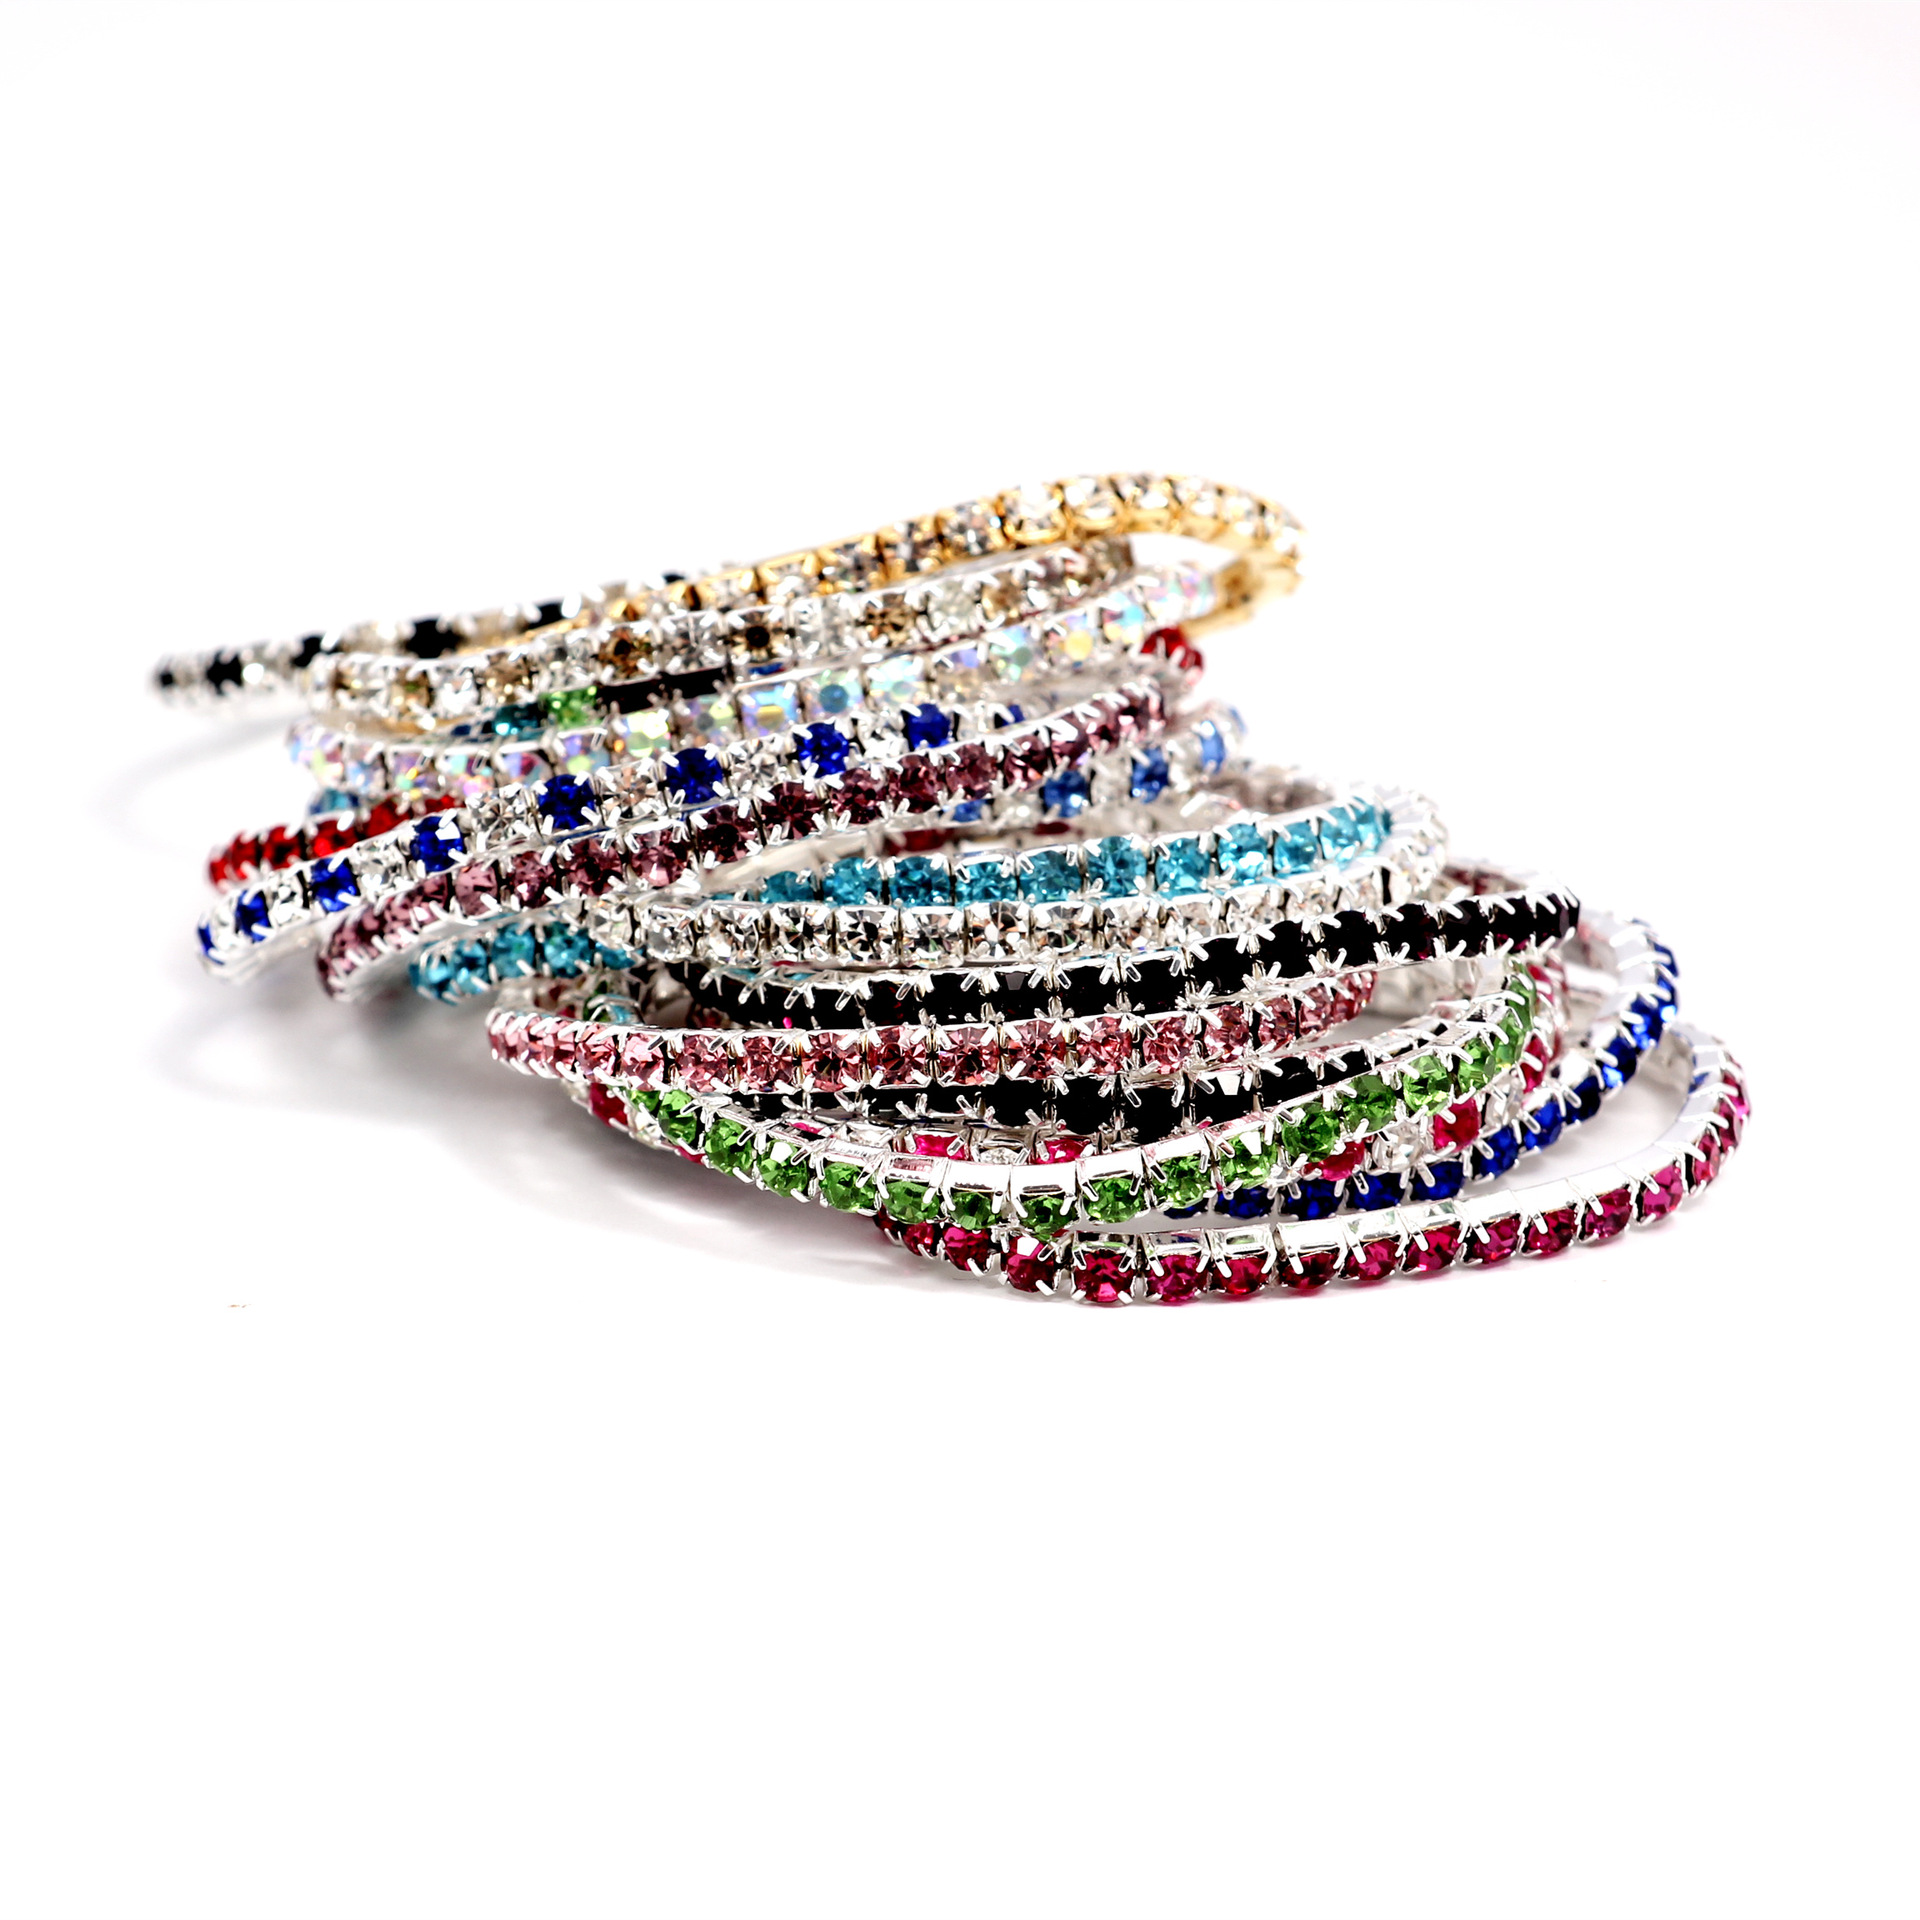 Simple crystalBracelet (Mix 20 - k9)NHIM0819-Mix 20 - k9